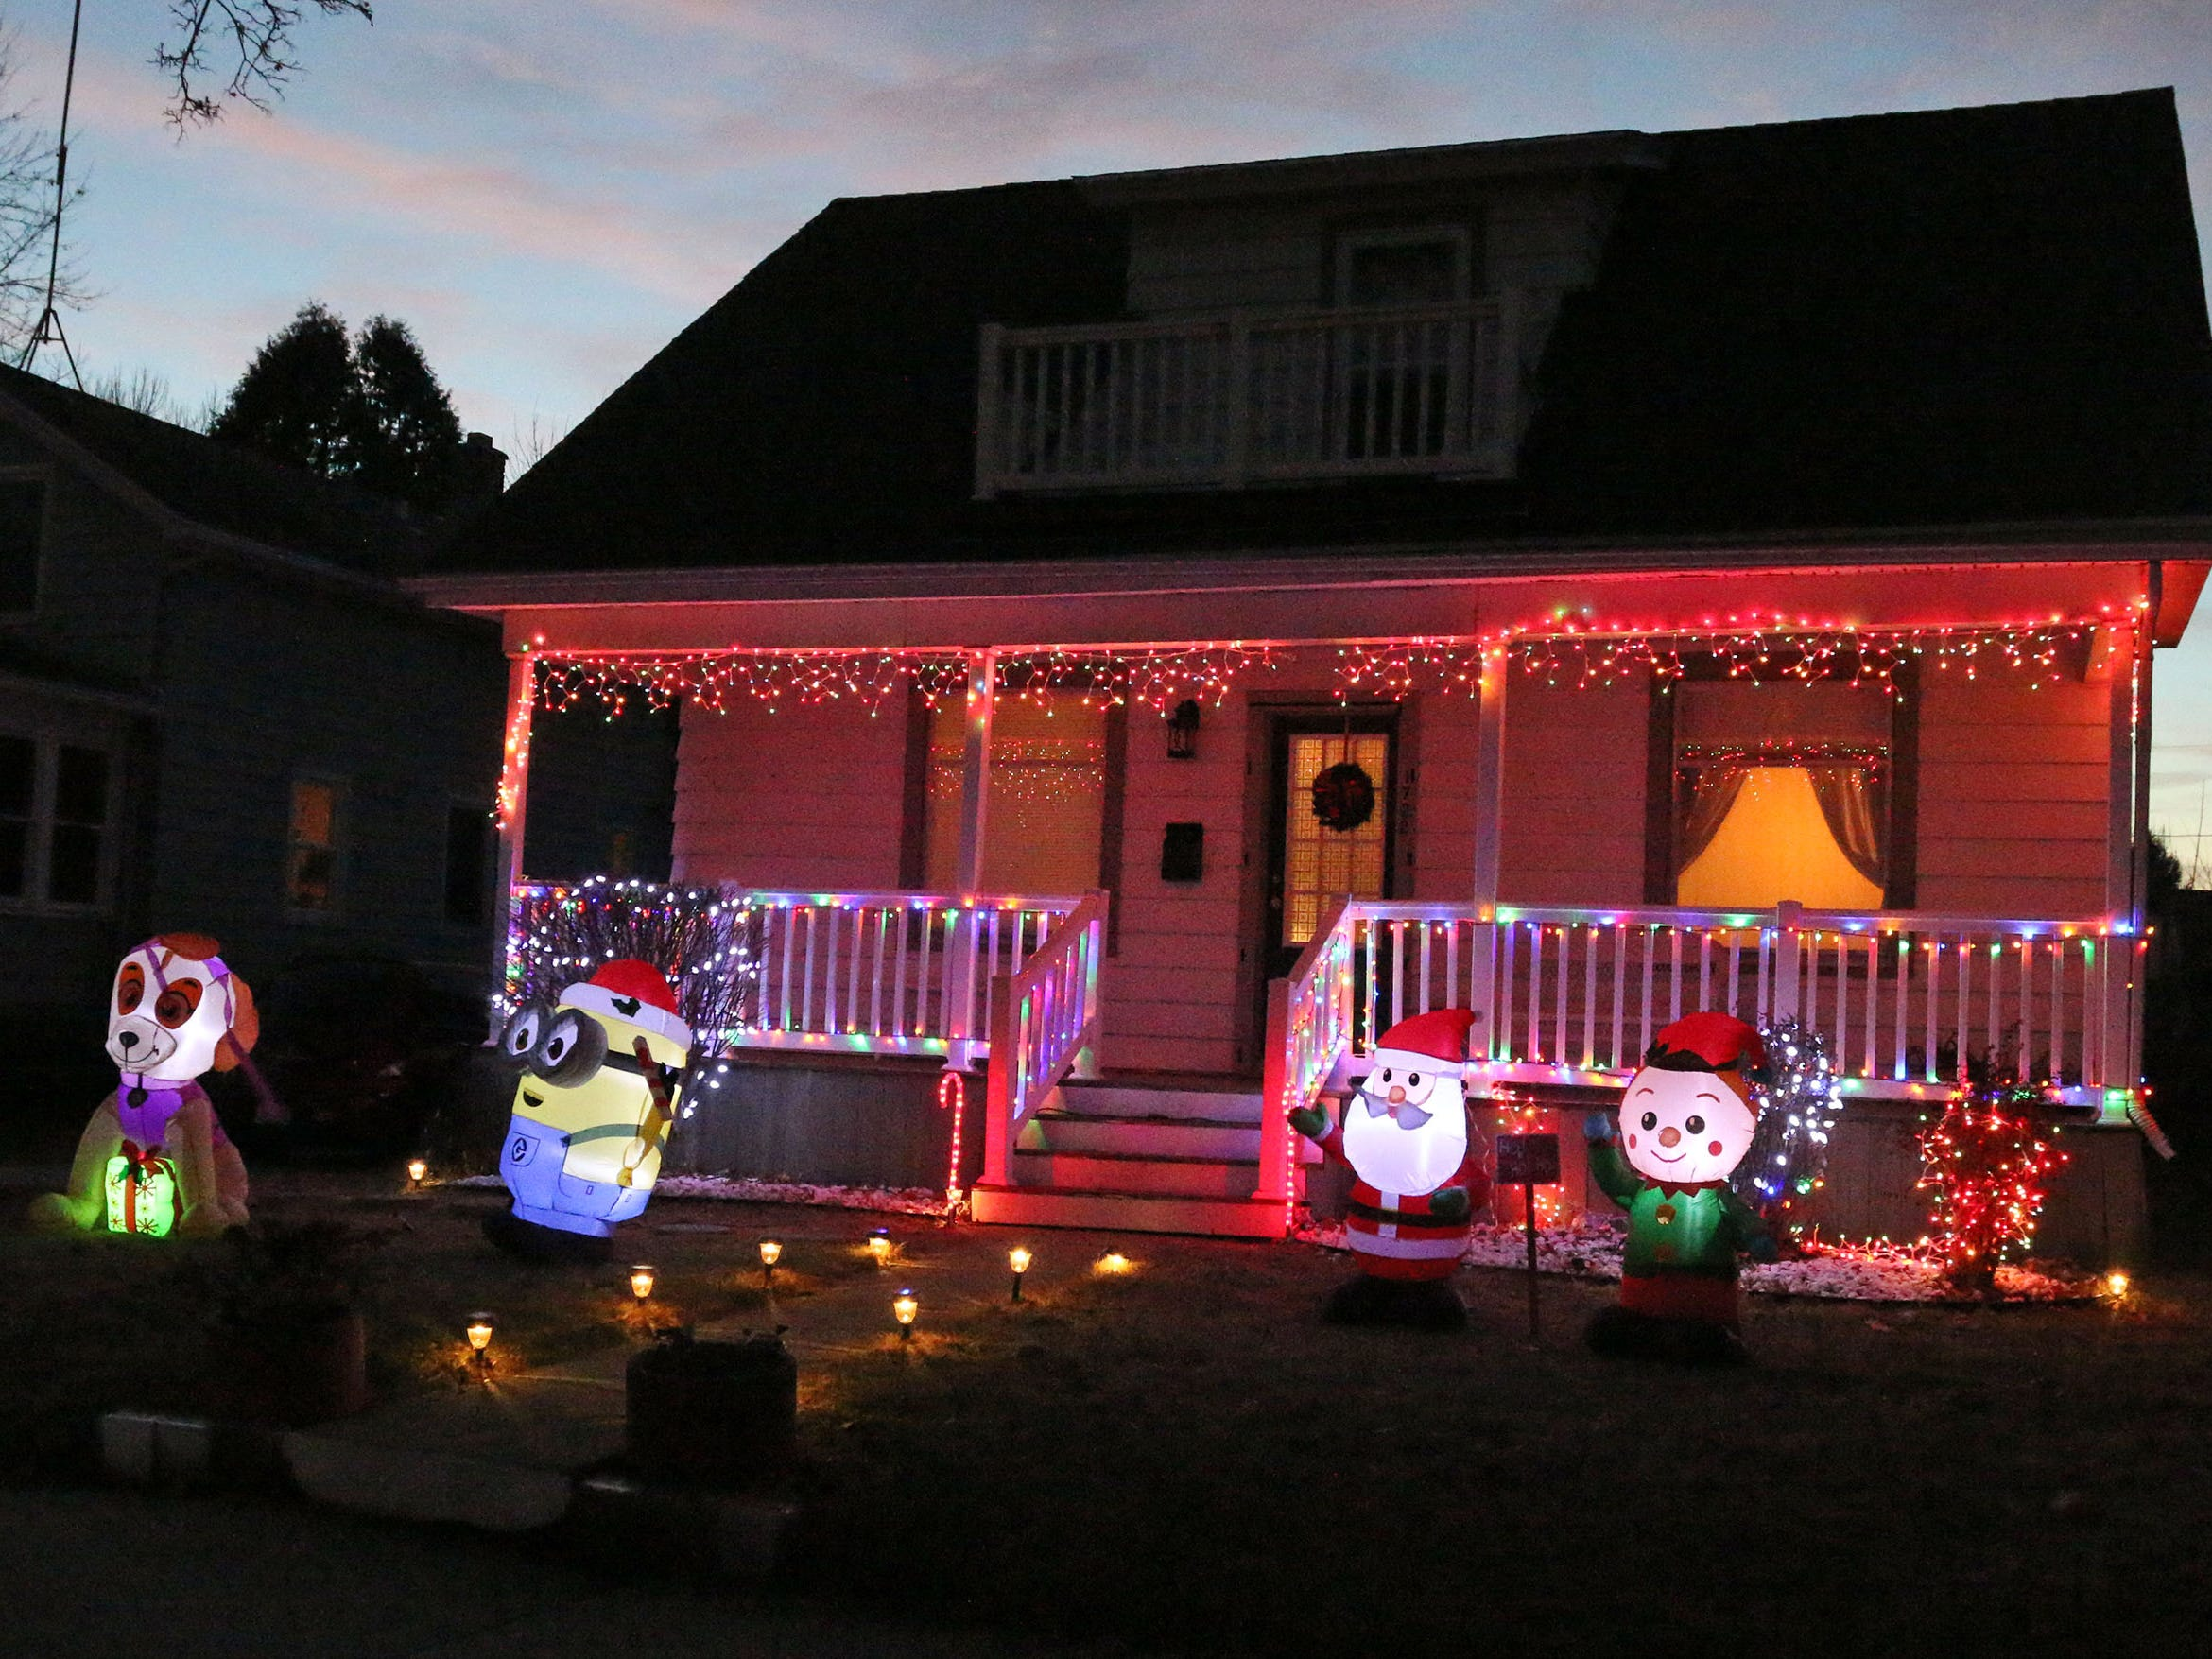 A minion stands guard on this North 3rd Street holiday display, Tuesday, December 18, 2108, in Sheboygan, Wis.